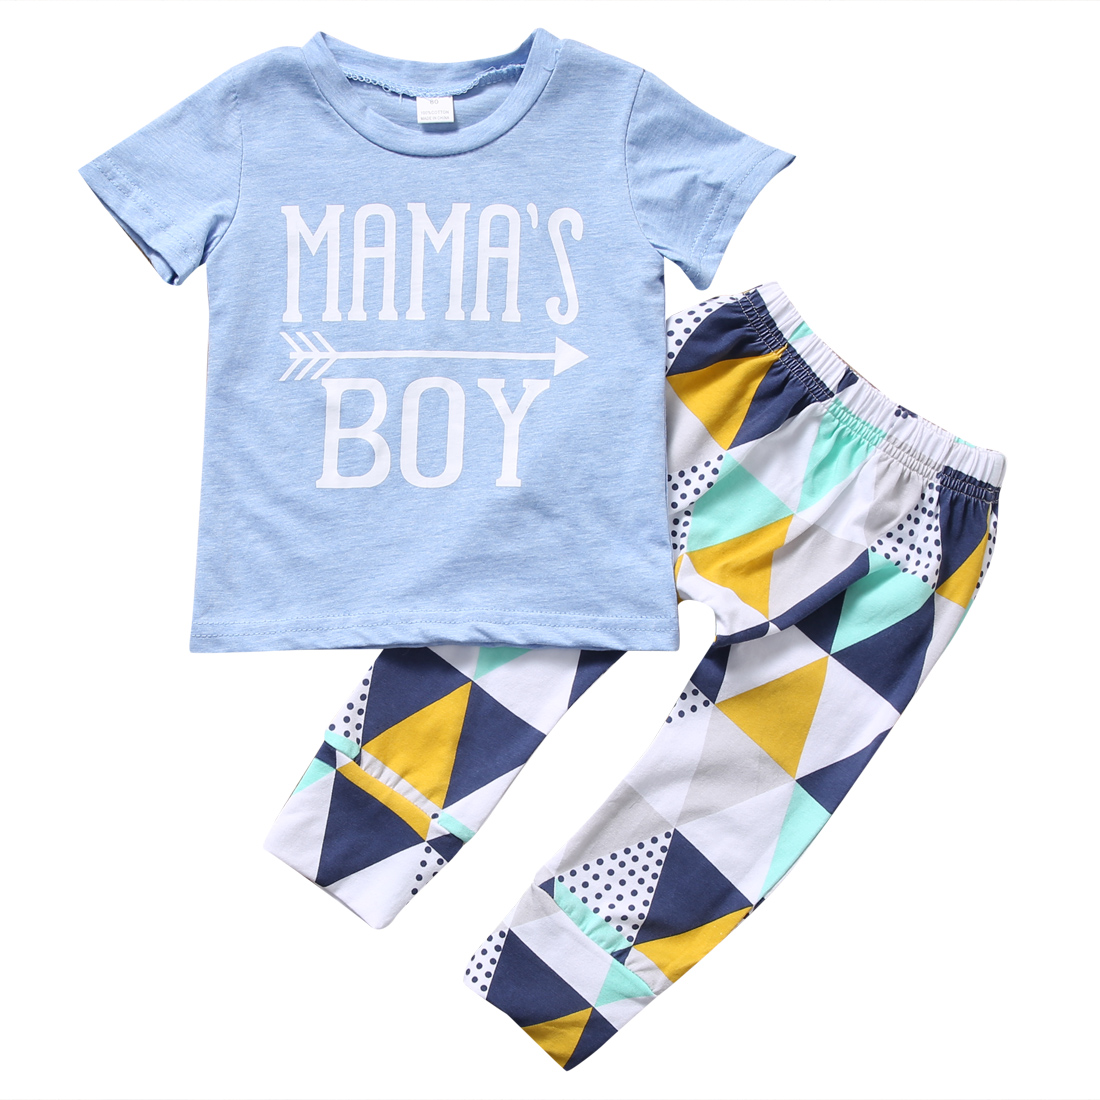 2PCS Newborn Baby Boys Outfits T-shirt Tops+ Pants Sets Clothes Summer Short Sleeve Mama Boy Print Tees Casual Clothes newborn toddler baby boy girl camo t shirt tops pants outfits set clothes 0 24m cotton casual short sleeve kids sets